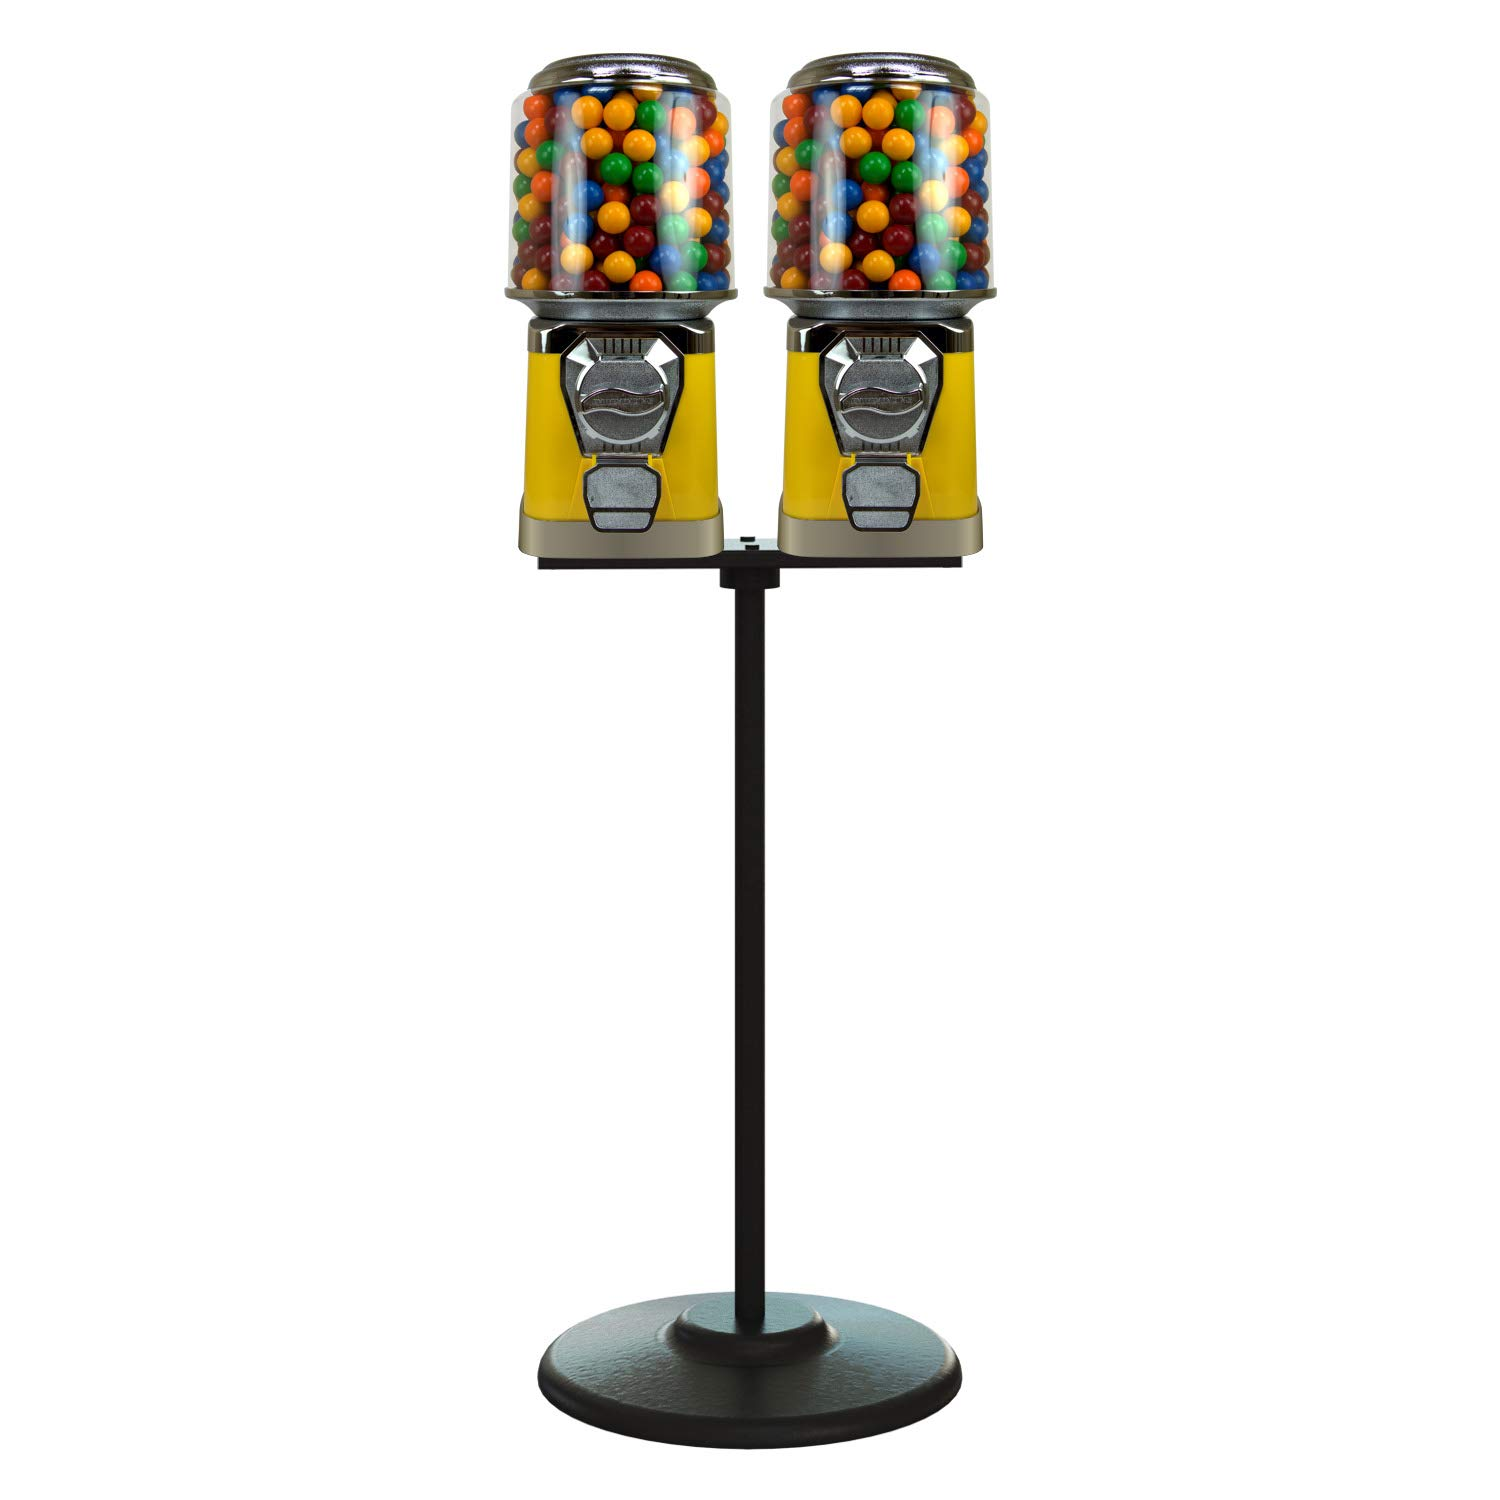 Gumball Machine with Stand - Max 43% OFF 2 Special price for a limited time Bundled Machines w Vending Yellow